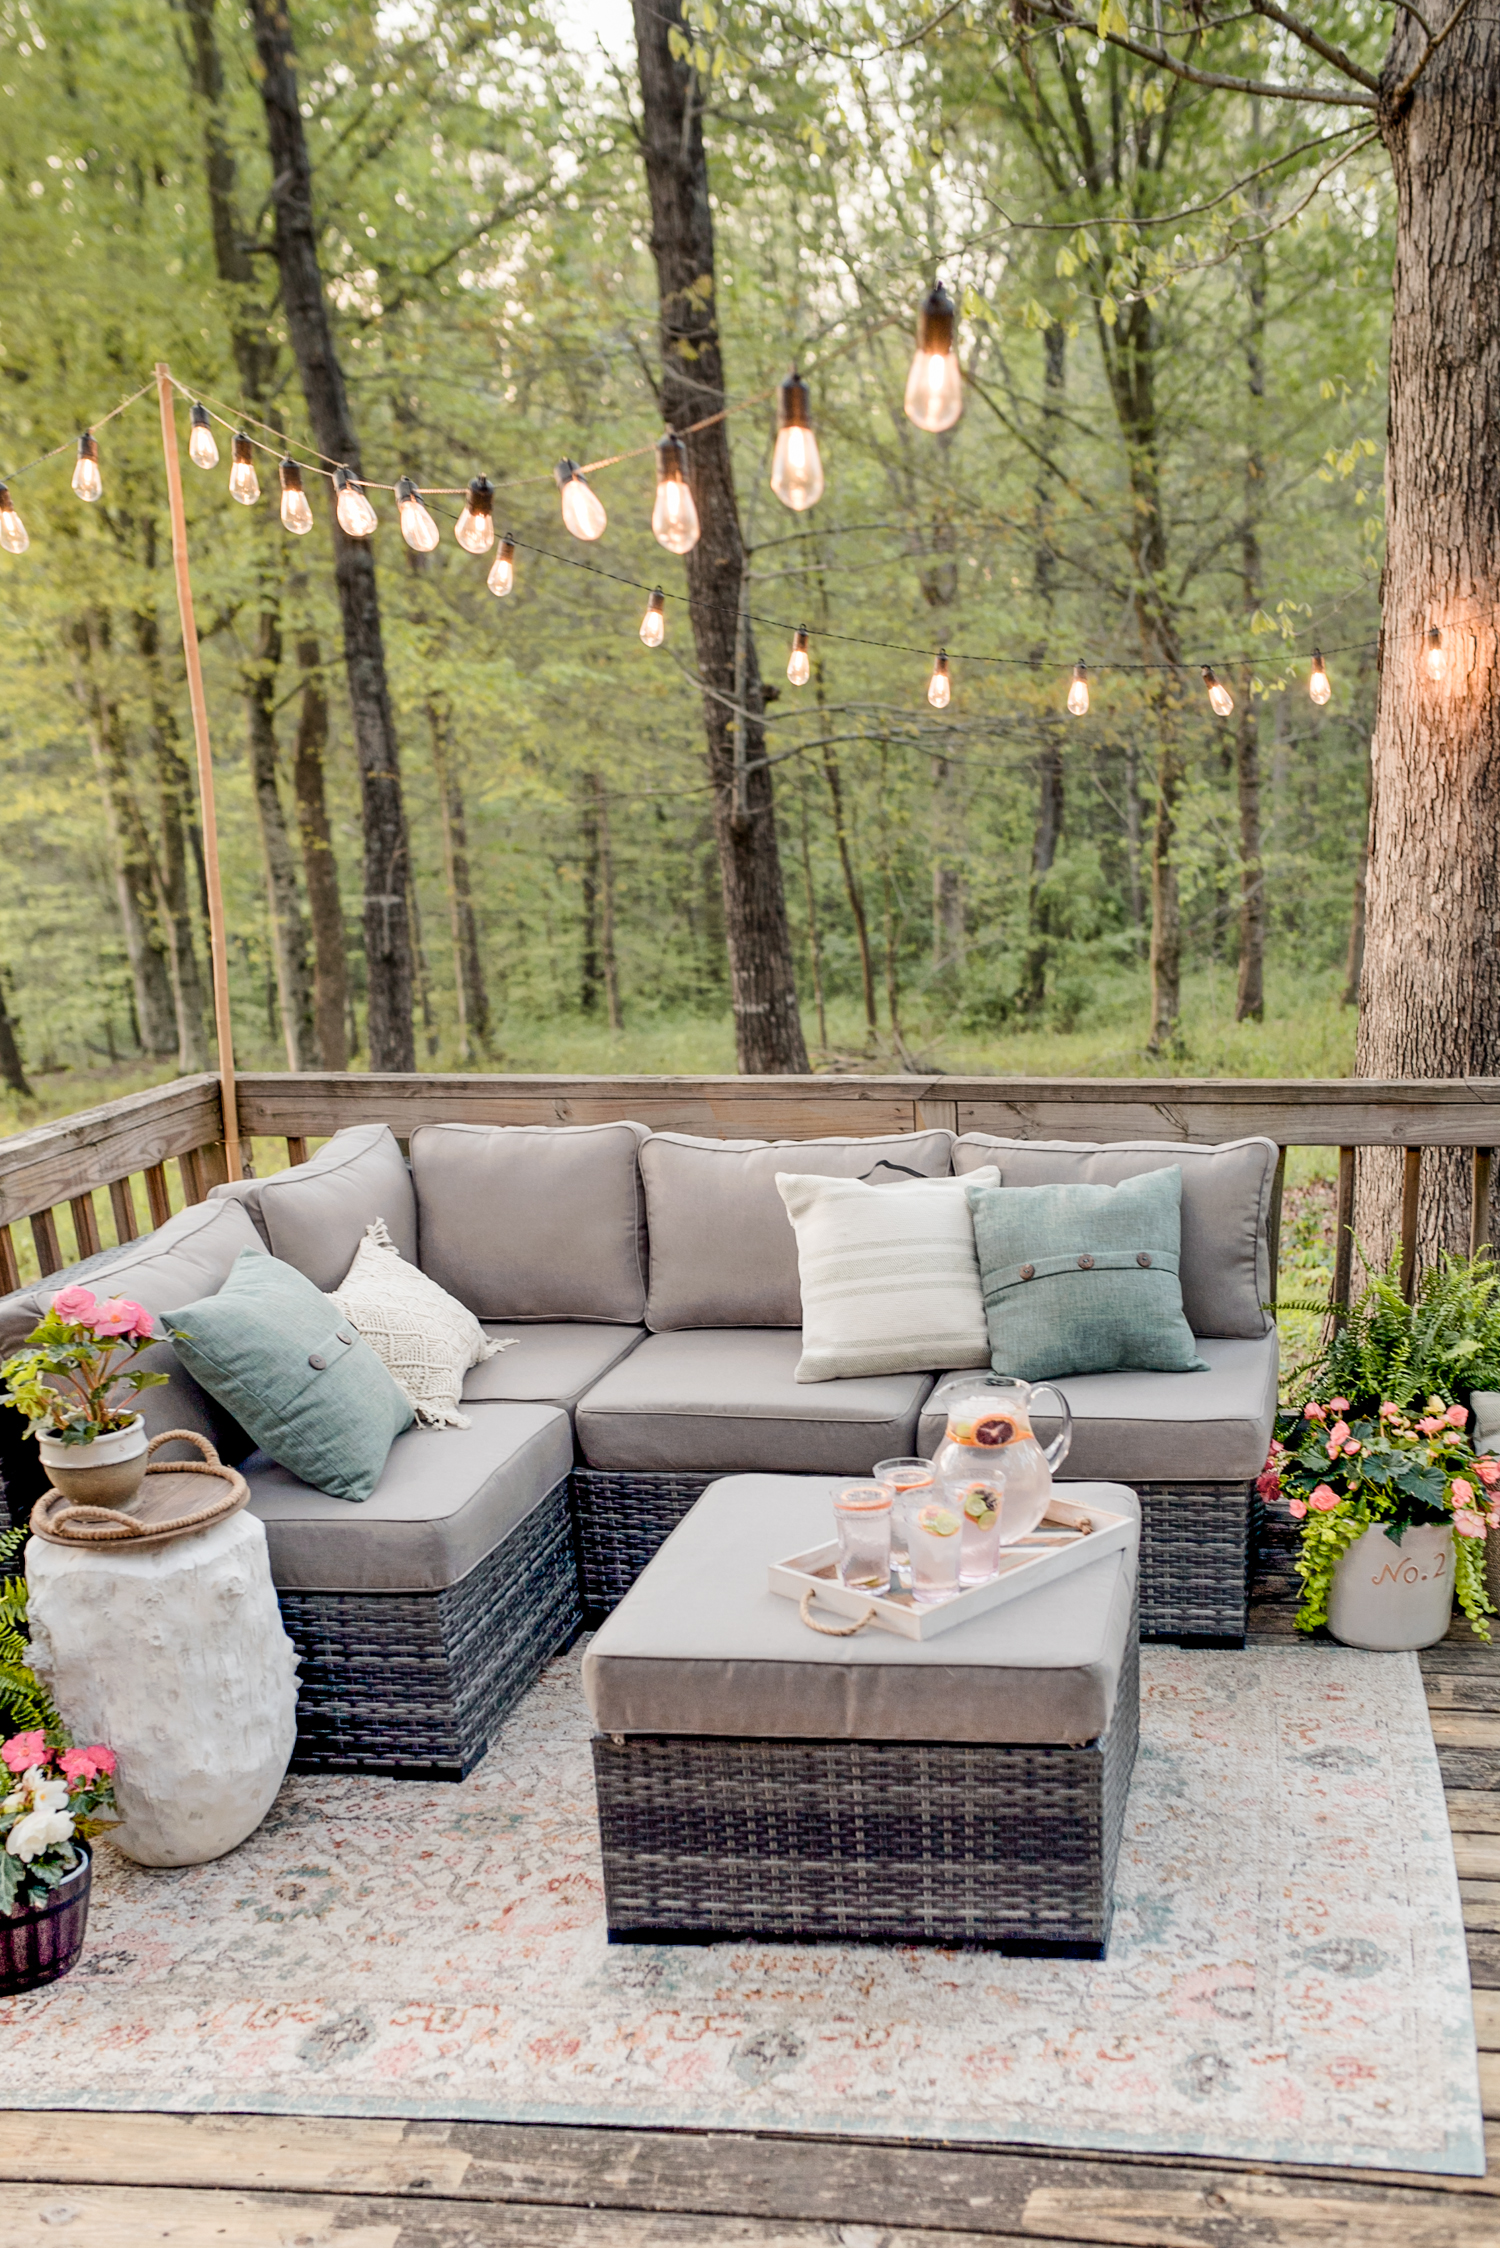 Outdoor Decorating Ideas: Tips on How to Decorate Outdoors